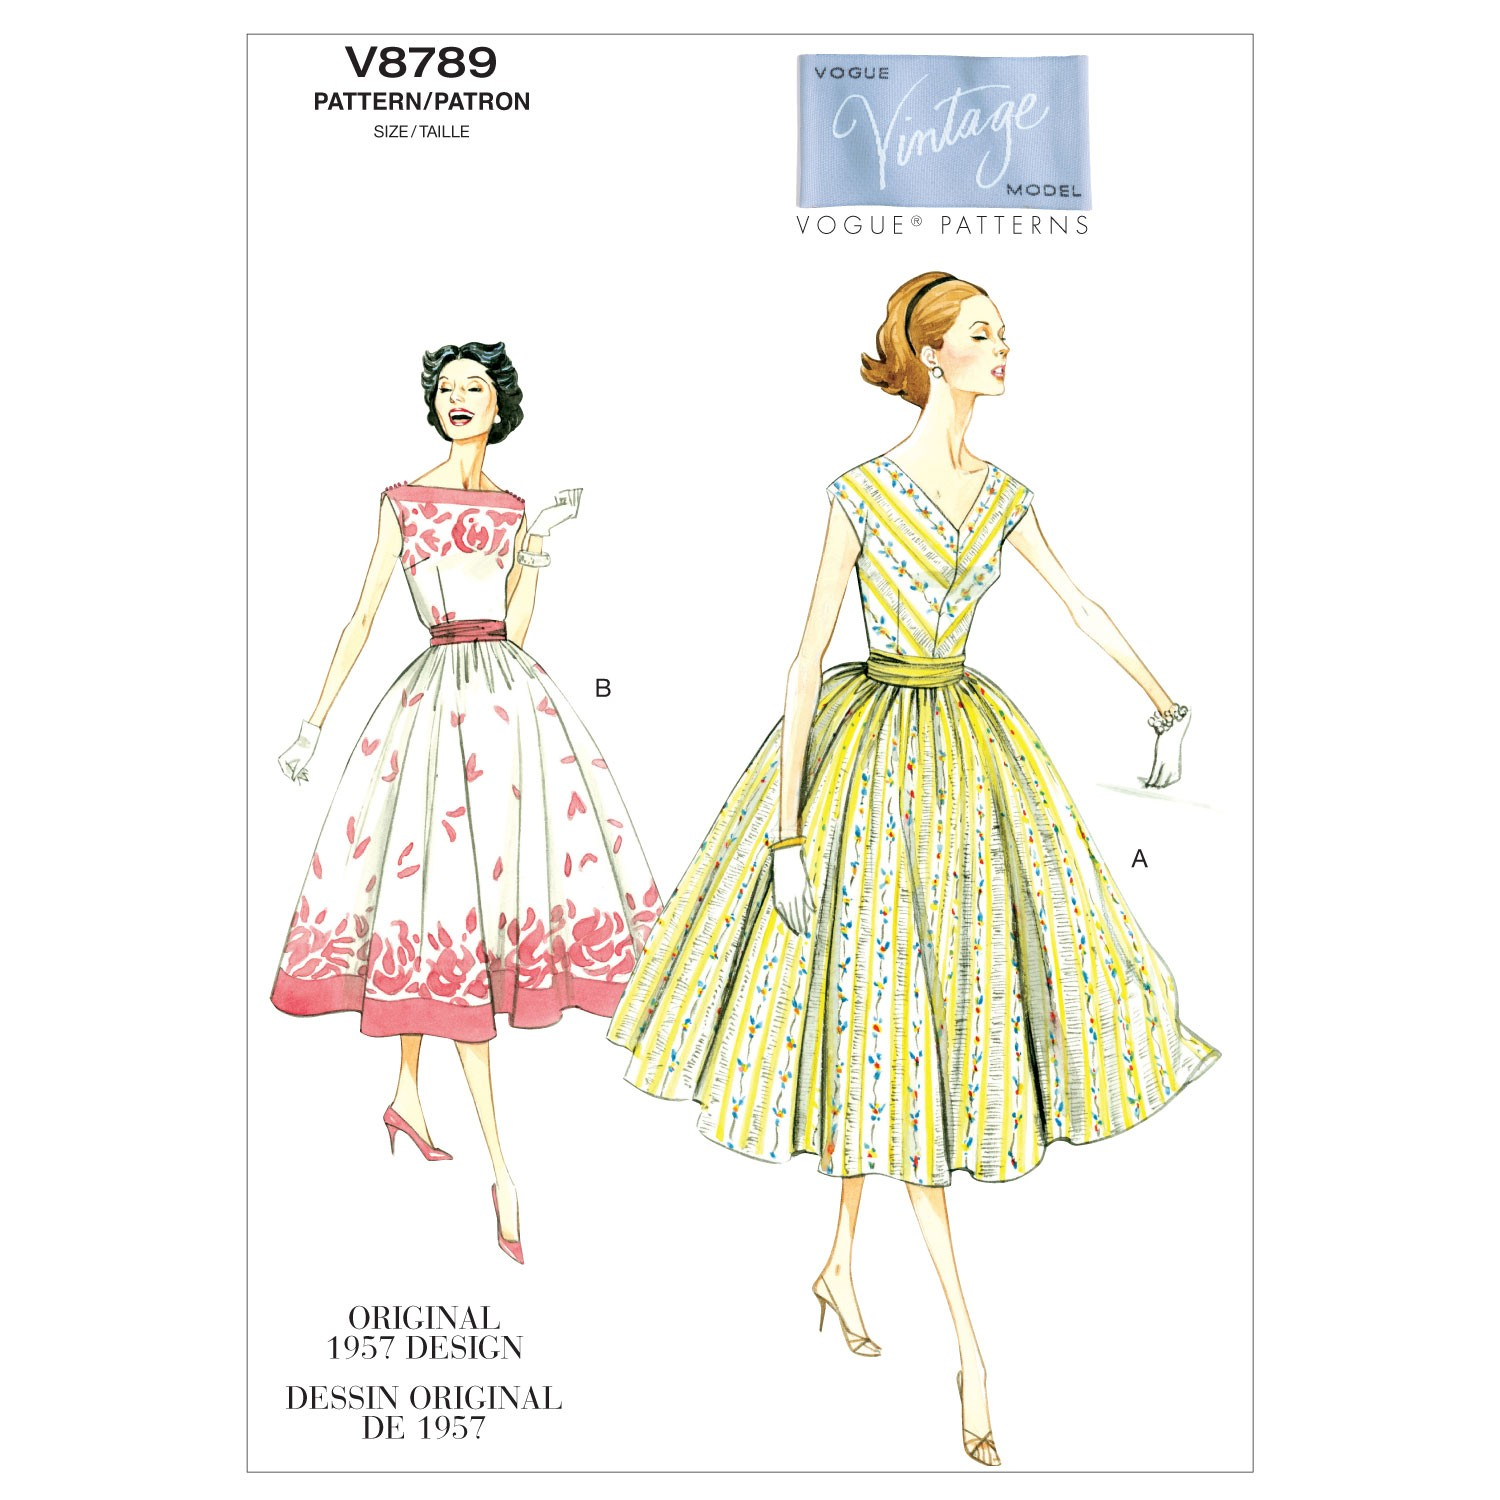 Vogue Sewing Pattern V8789 Women's Vintage Dress With Cummerbund